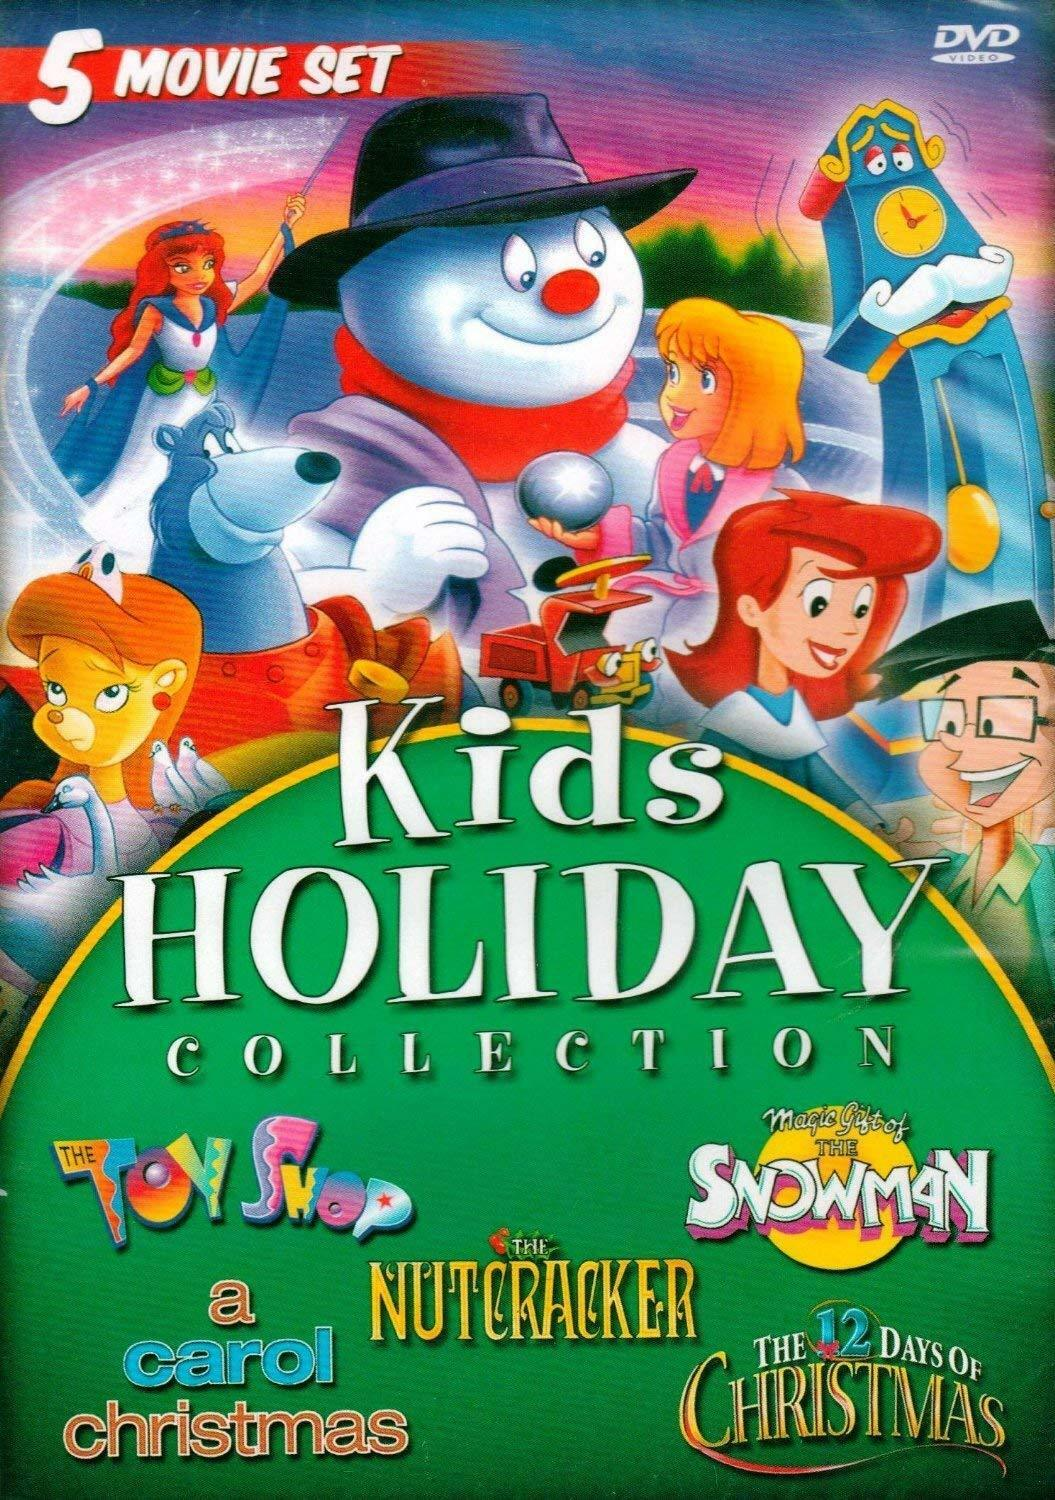 Kids Holiday Collection DVD 5 Movies Nutcracker Snowman 12 Days ...